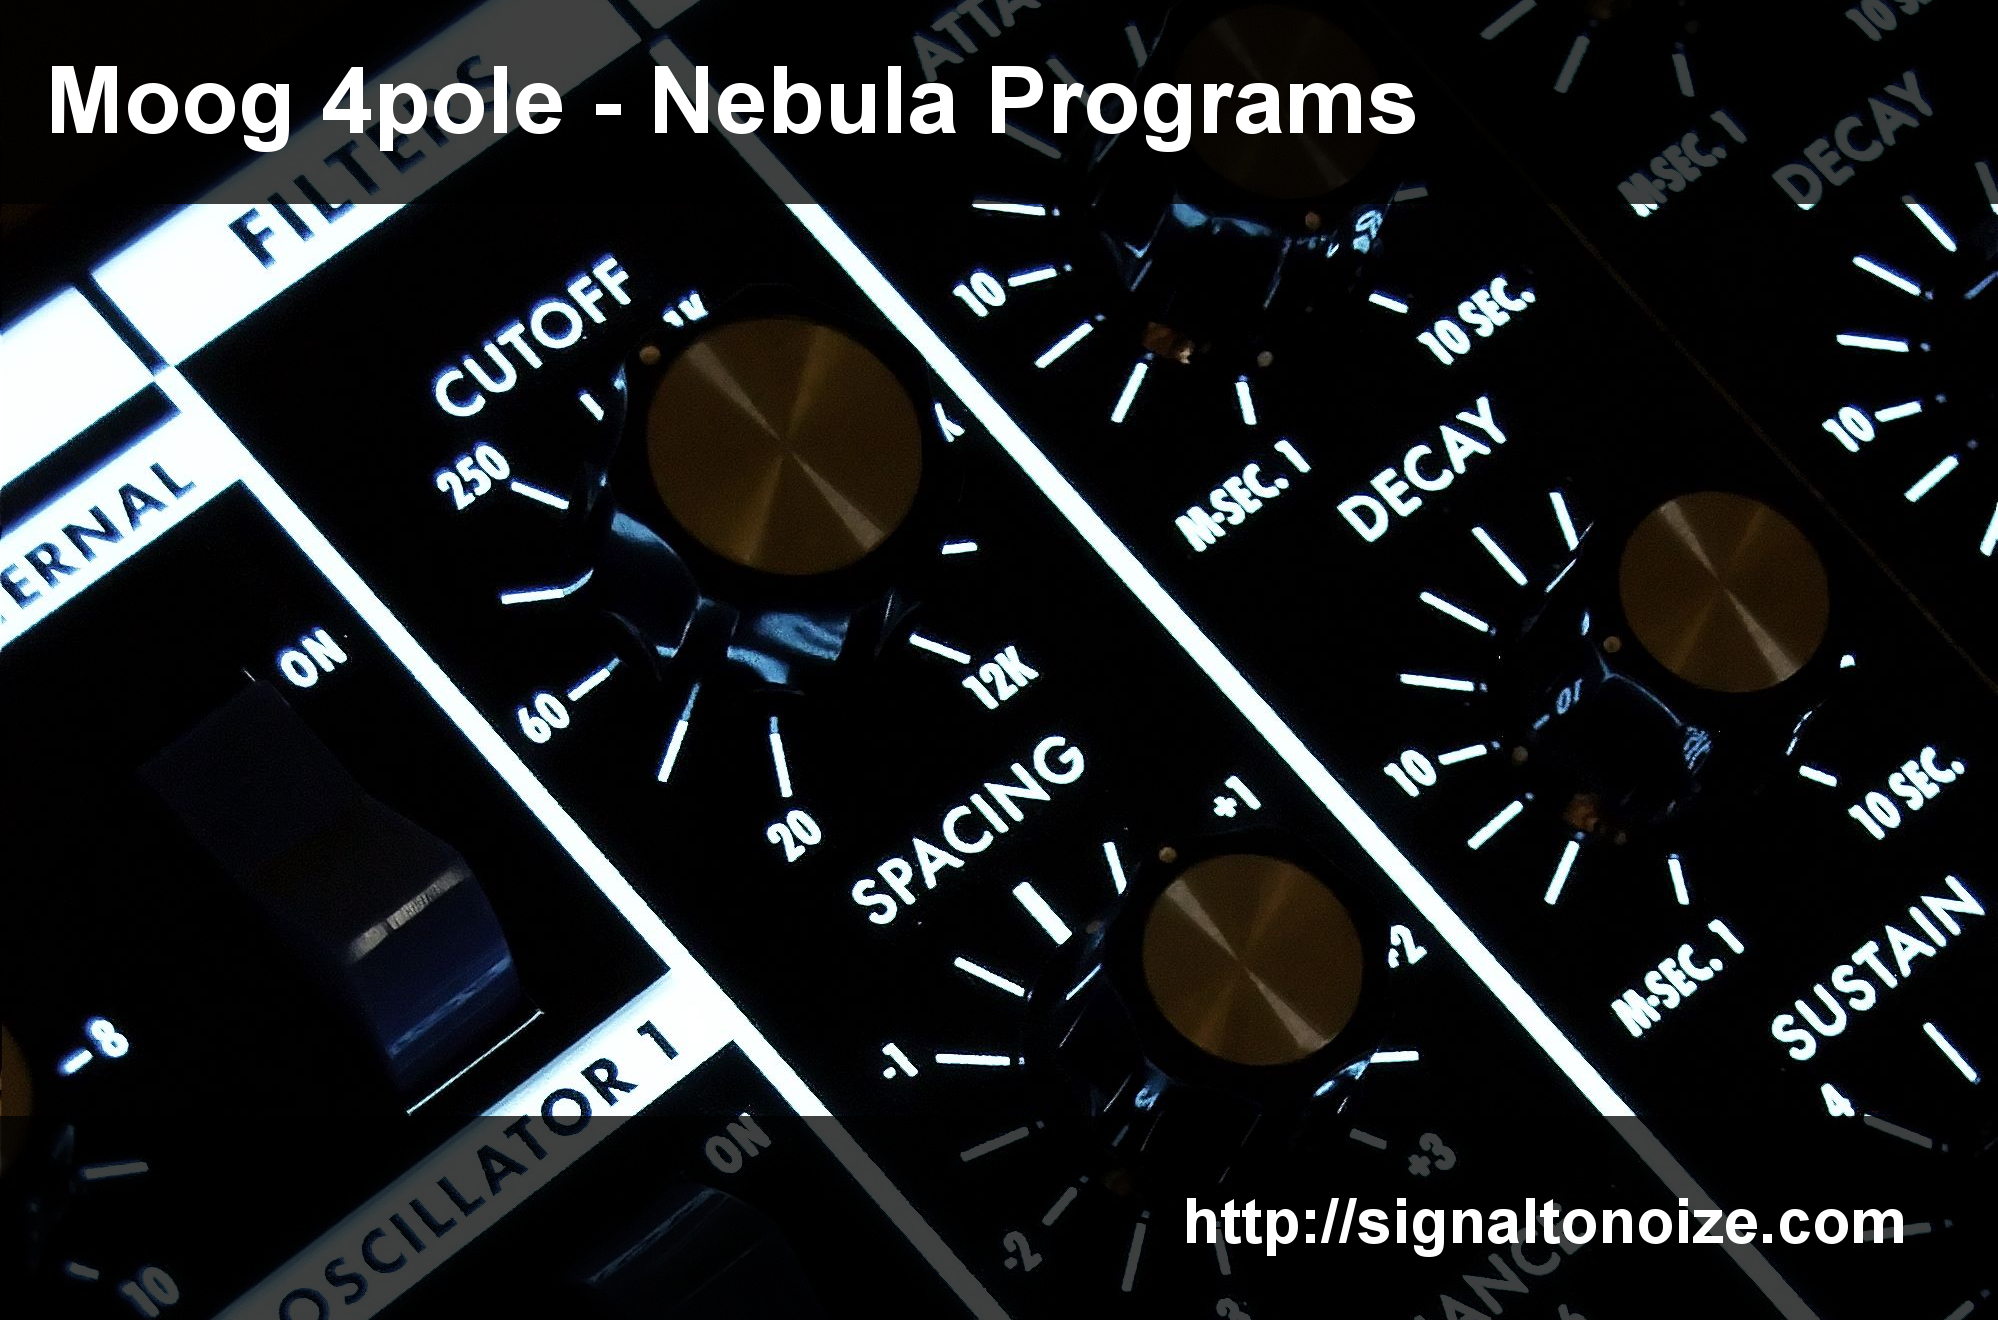 Moog 4pole – Nebula Programs